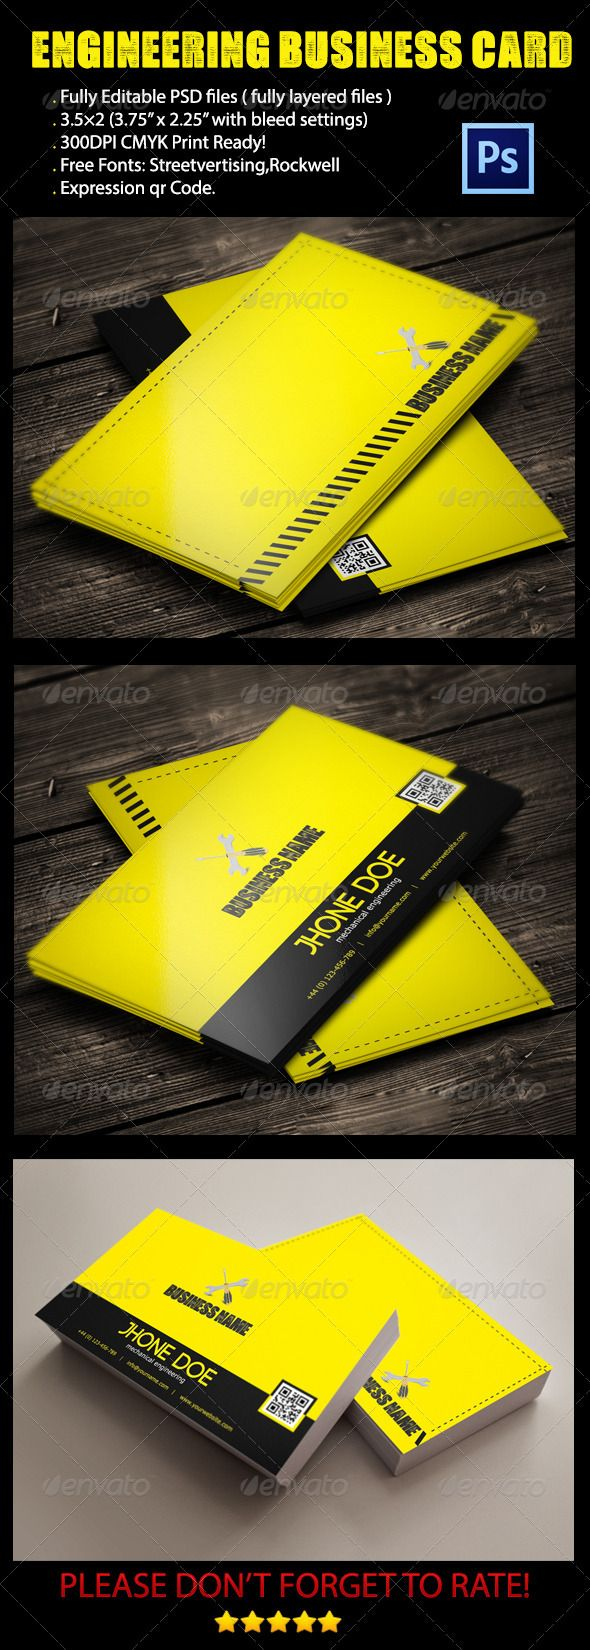 Engineer business card pinterest business cards business and fonts engineer business card photoshop psd design business cards online business cards available here reheart Choice Image